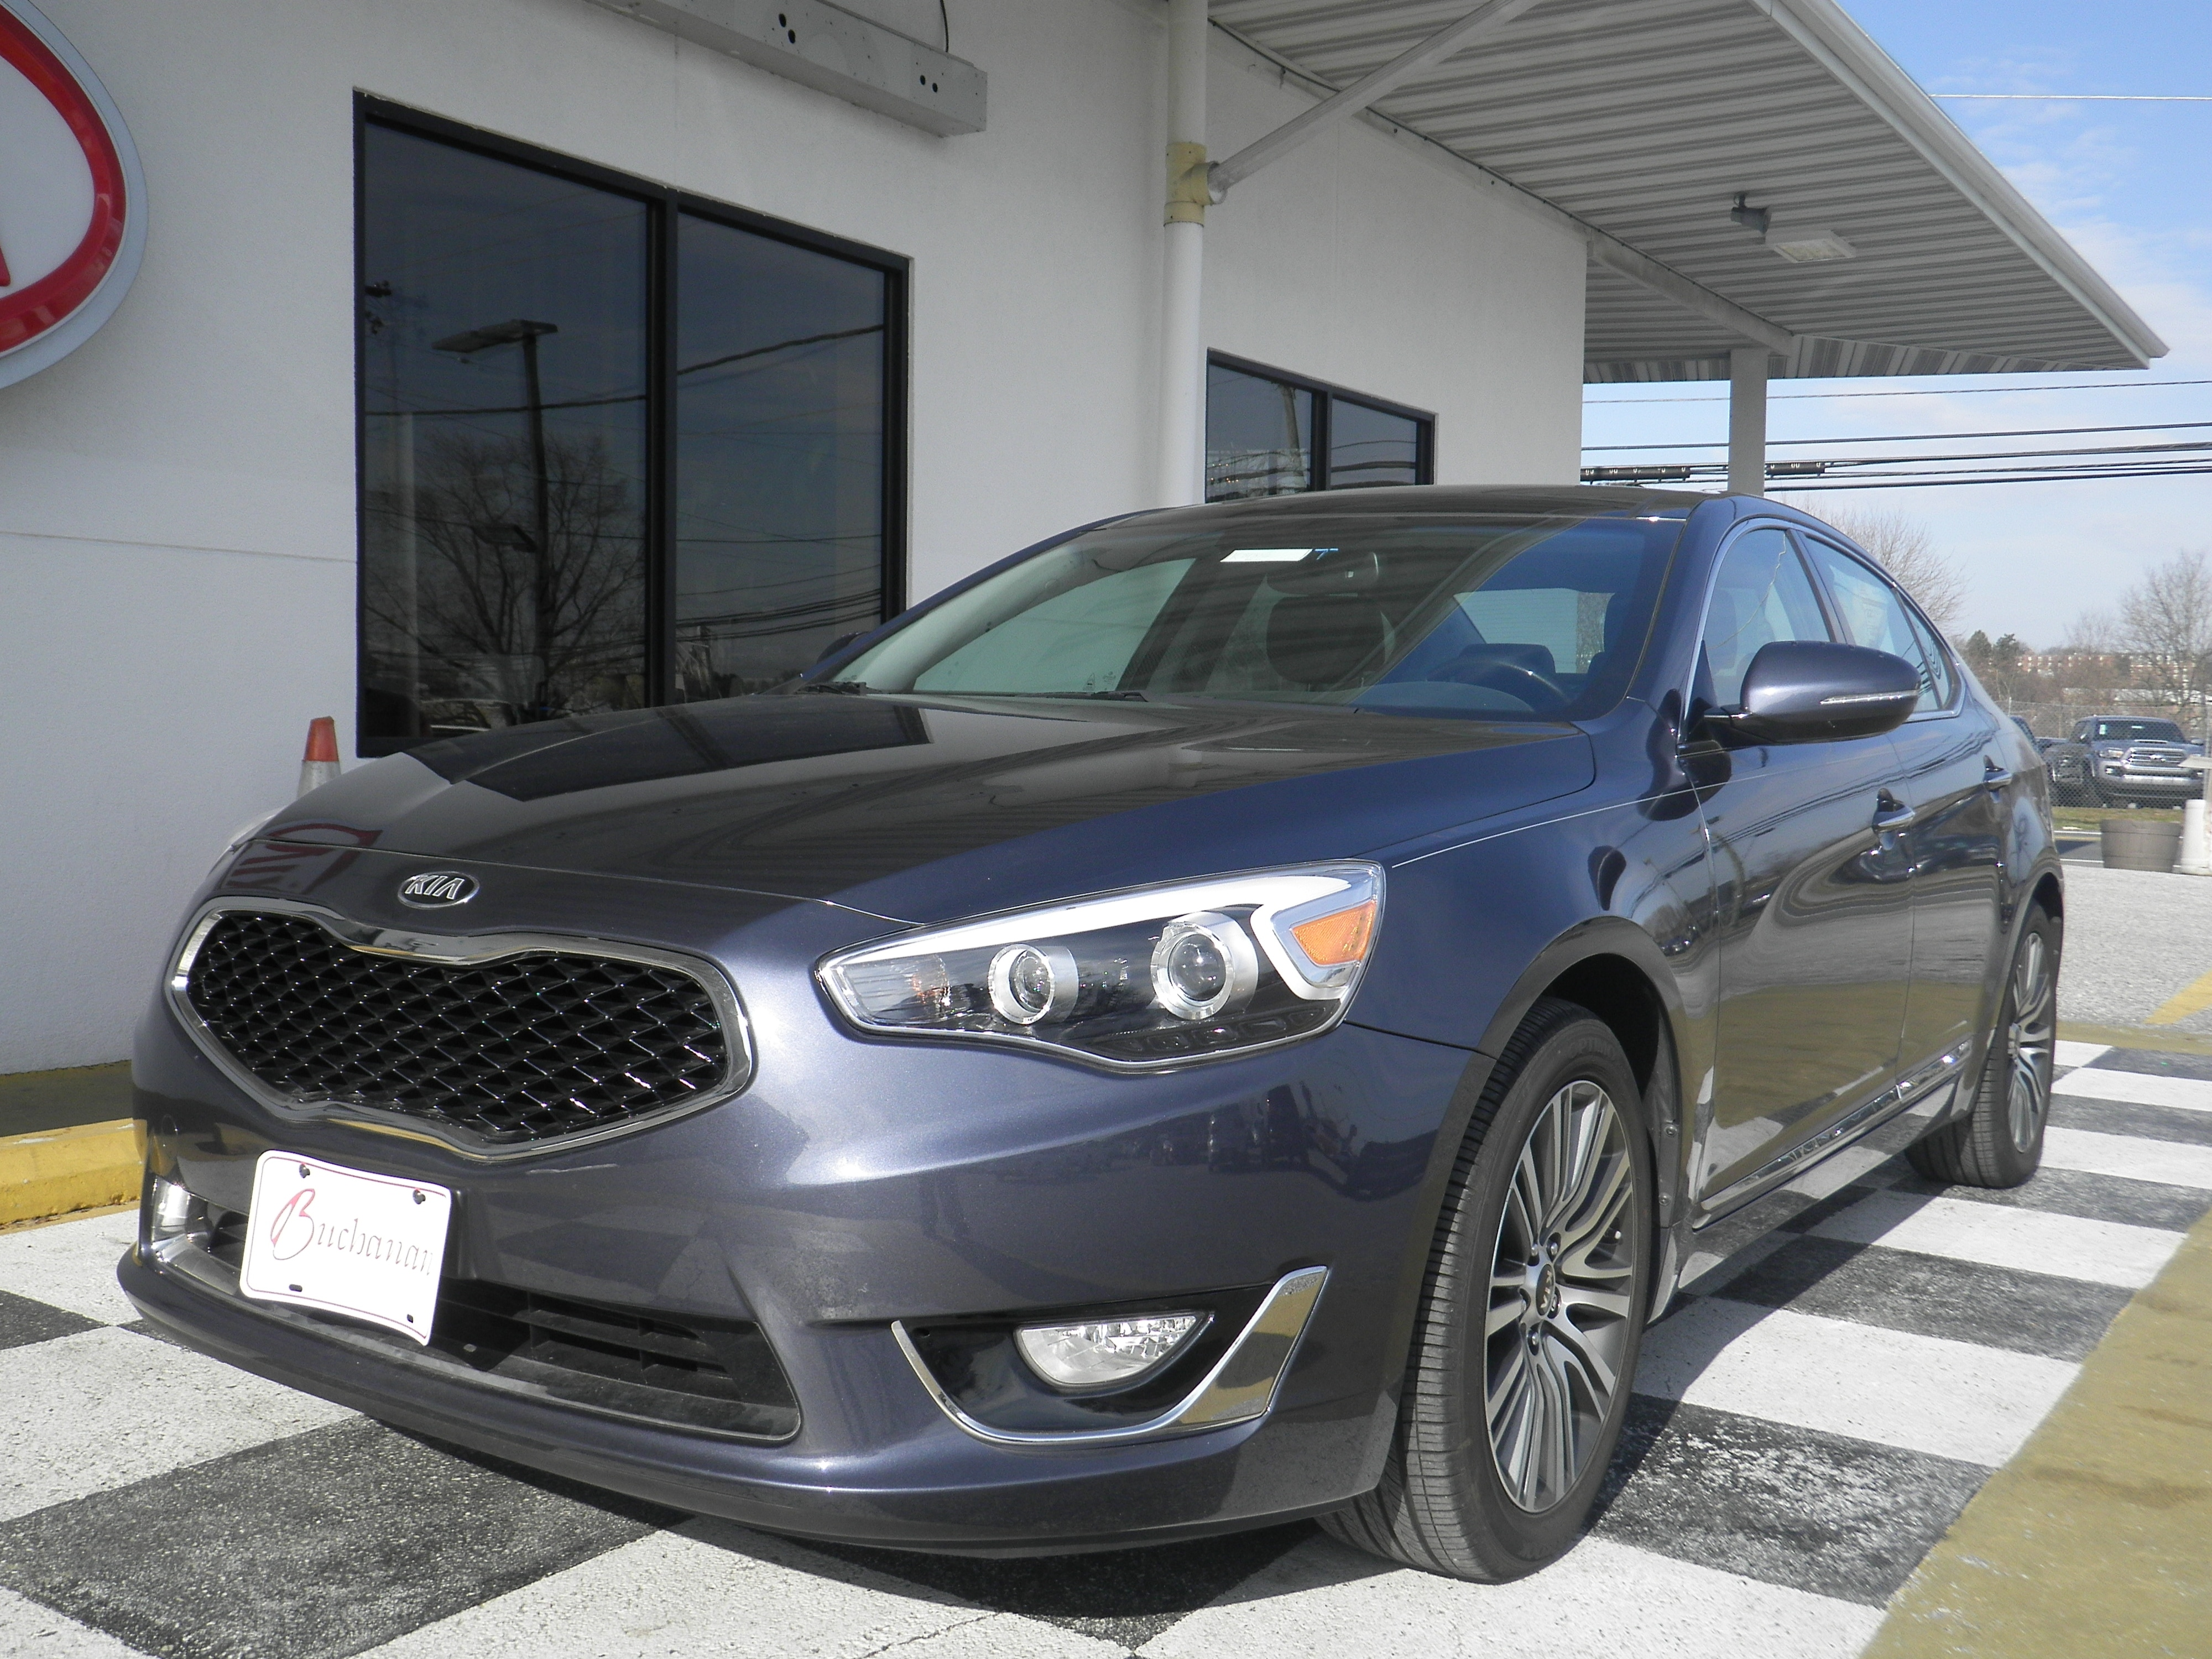 Certified Pre-Owned 2015 Kia Cadenza 4DR SDN Premium Sedan For Sale in  Westminster, MD